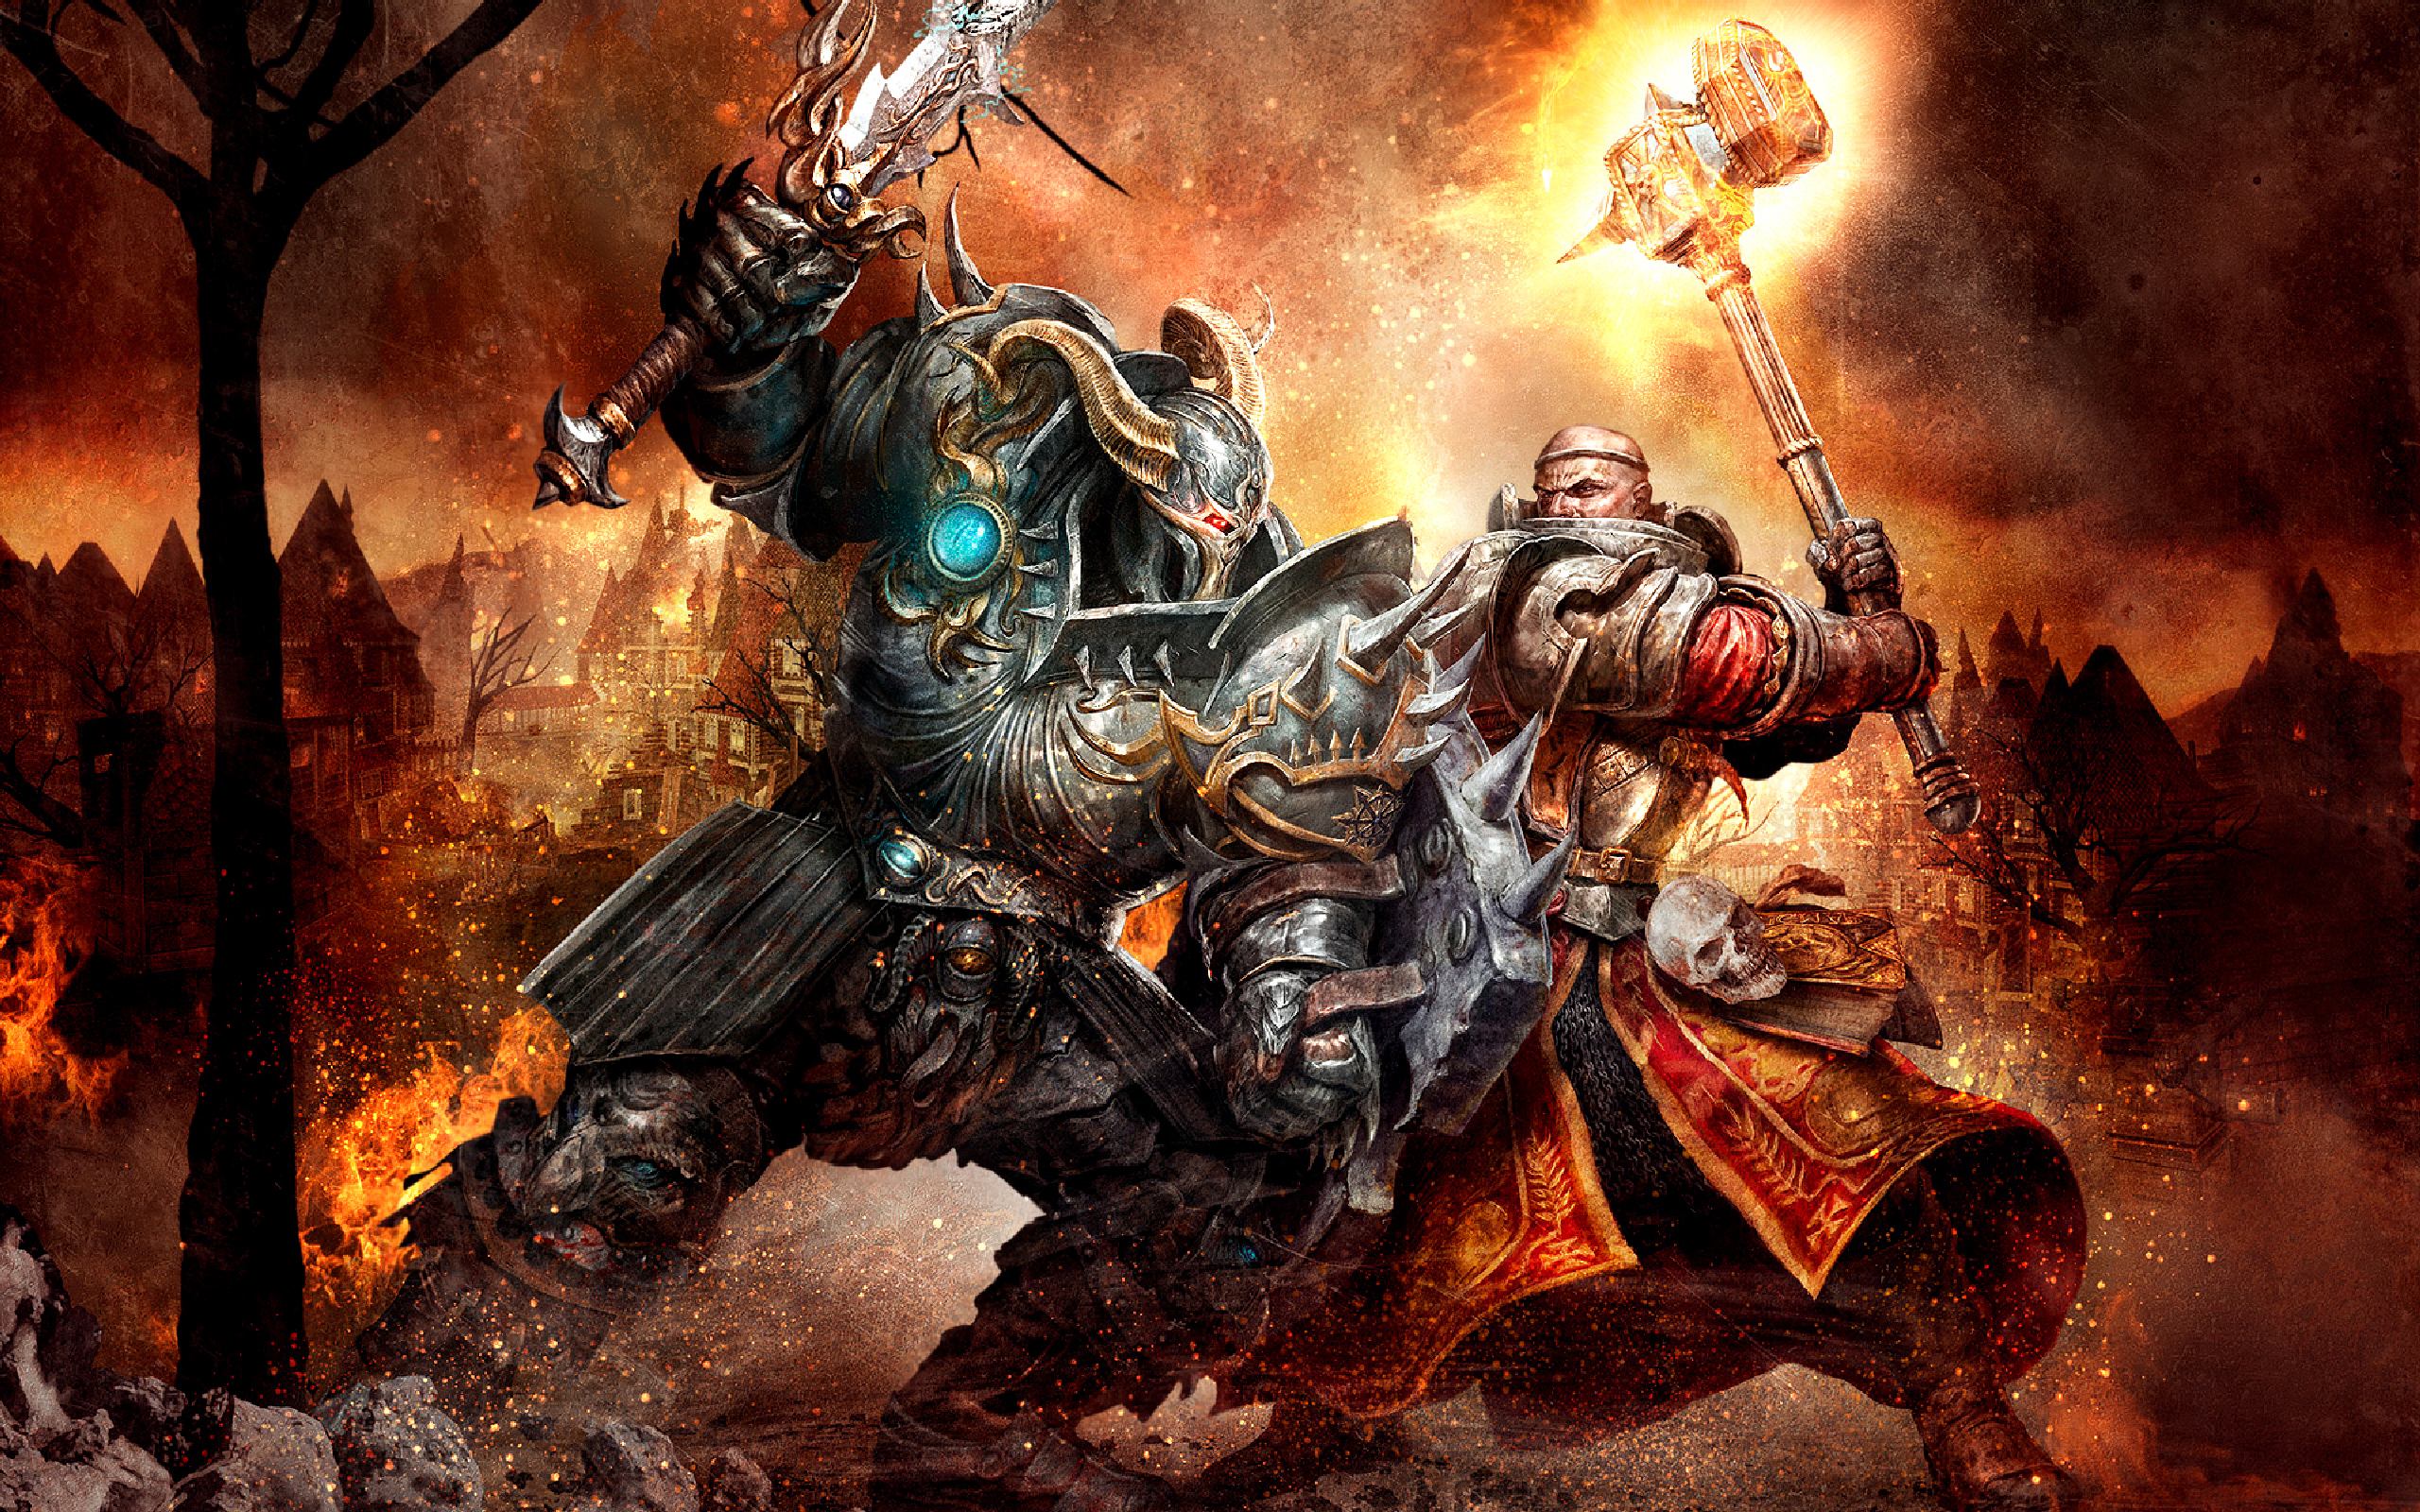 Video Game - Warhammer Wallpaper